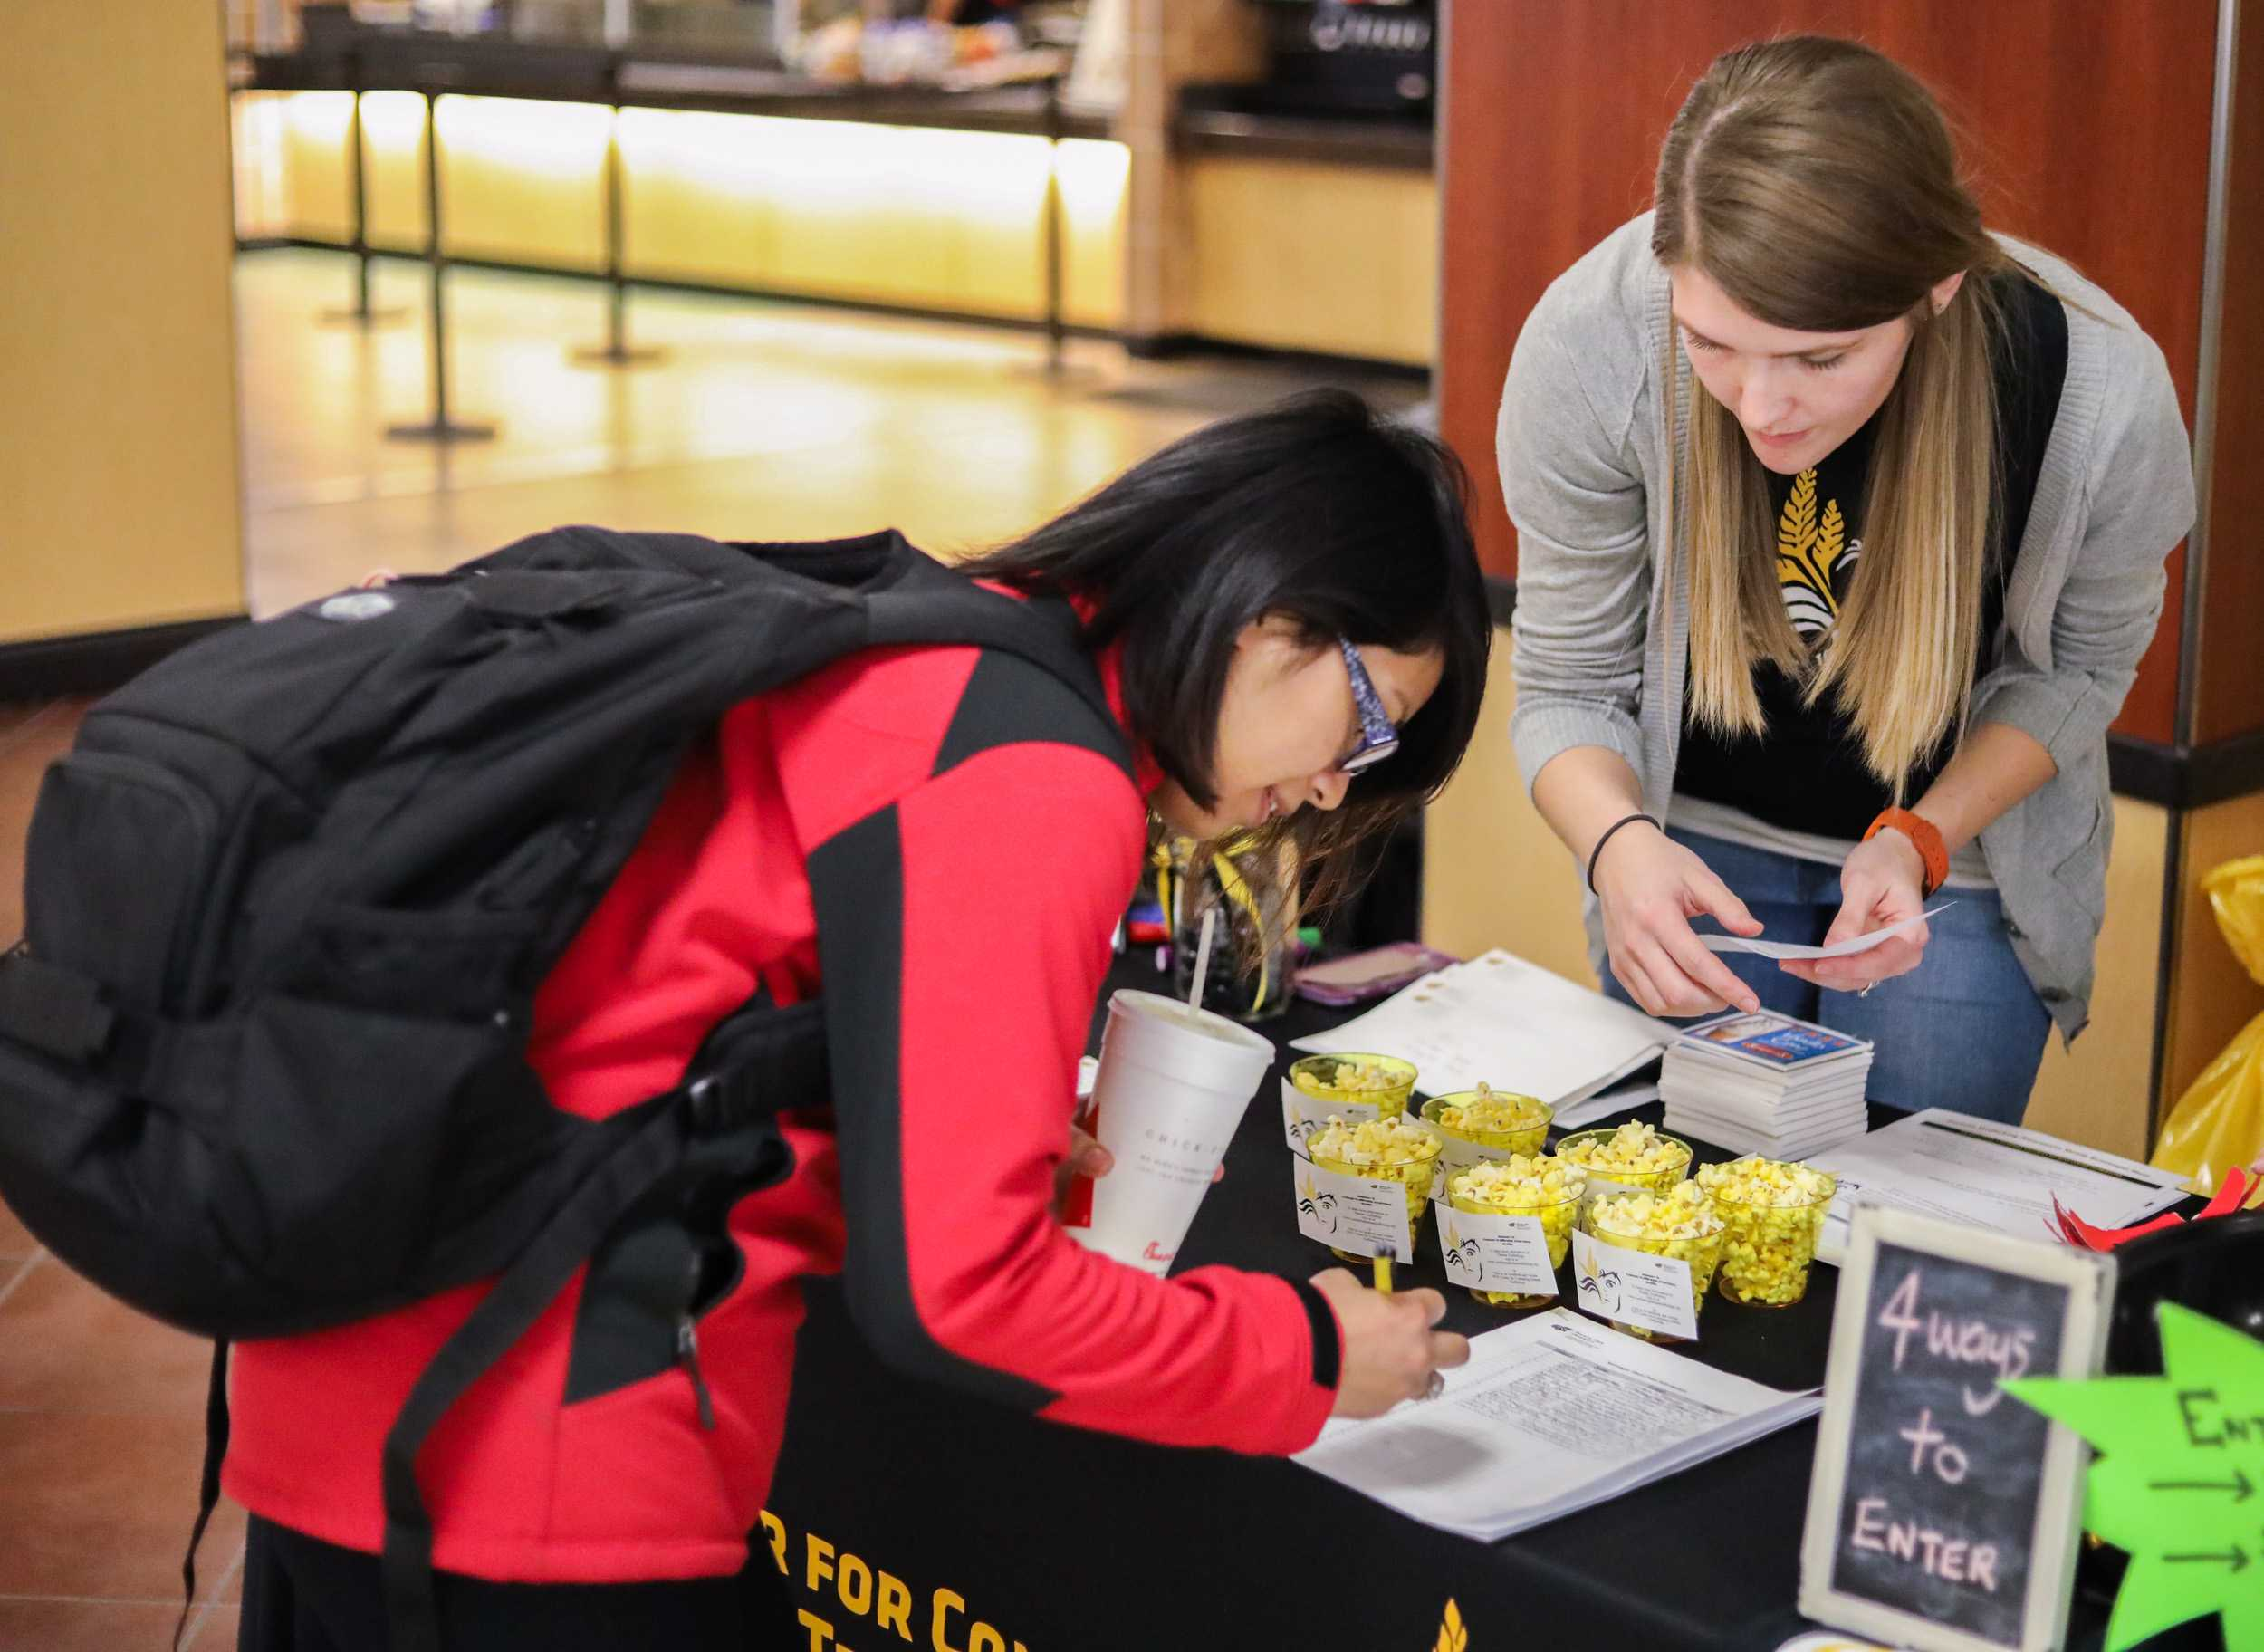 Kalynn Cheyney (right) with the Center for Combating Human Trafficking speaks with a Wichita State student (left) during their awareness event in the Rhatigan Student Center. (Jan. 25, 2017)